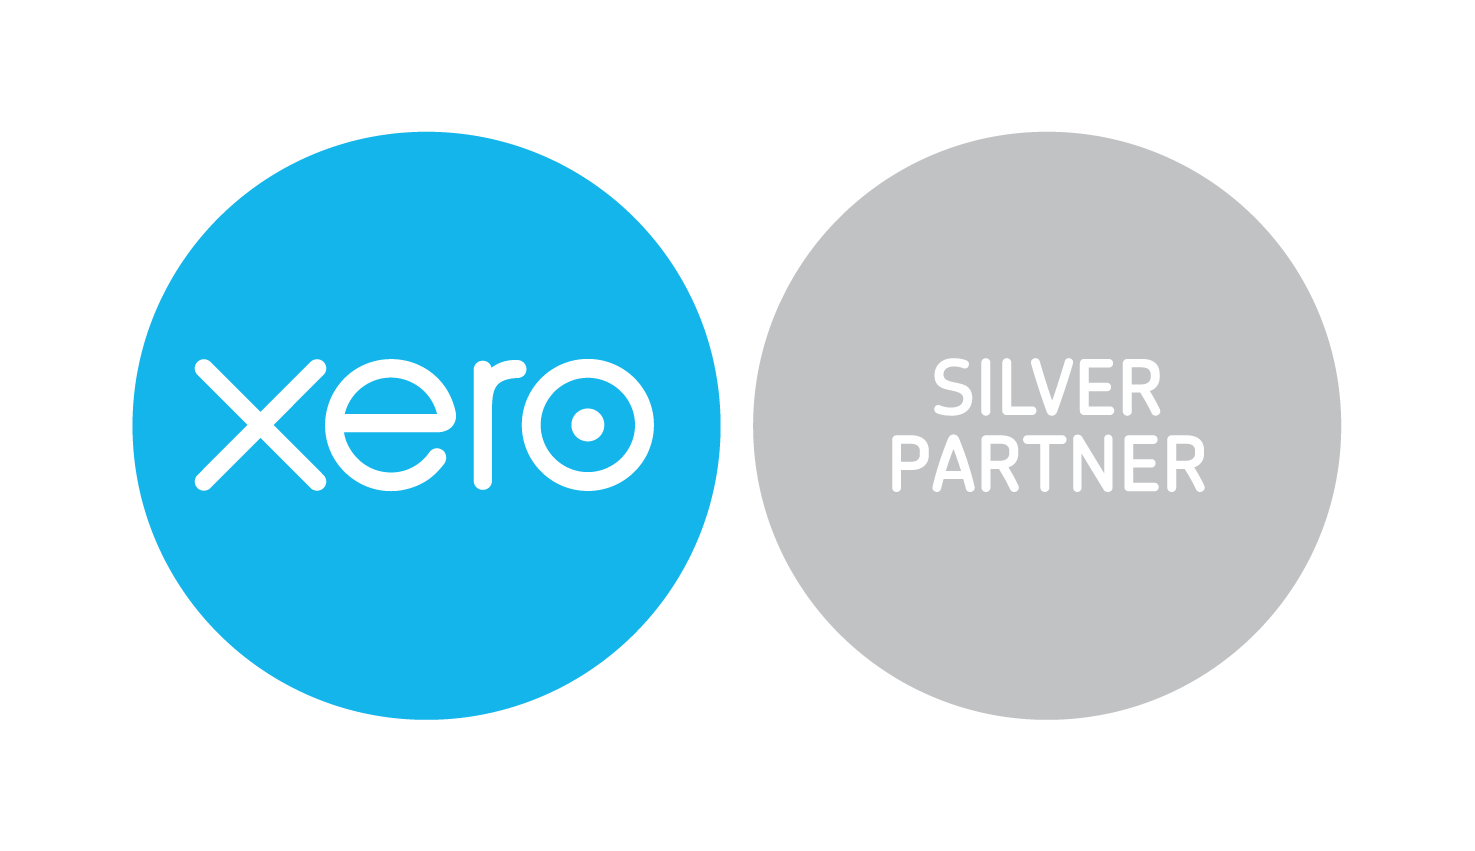 Xero Silver Partner approved